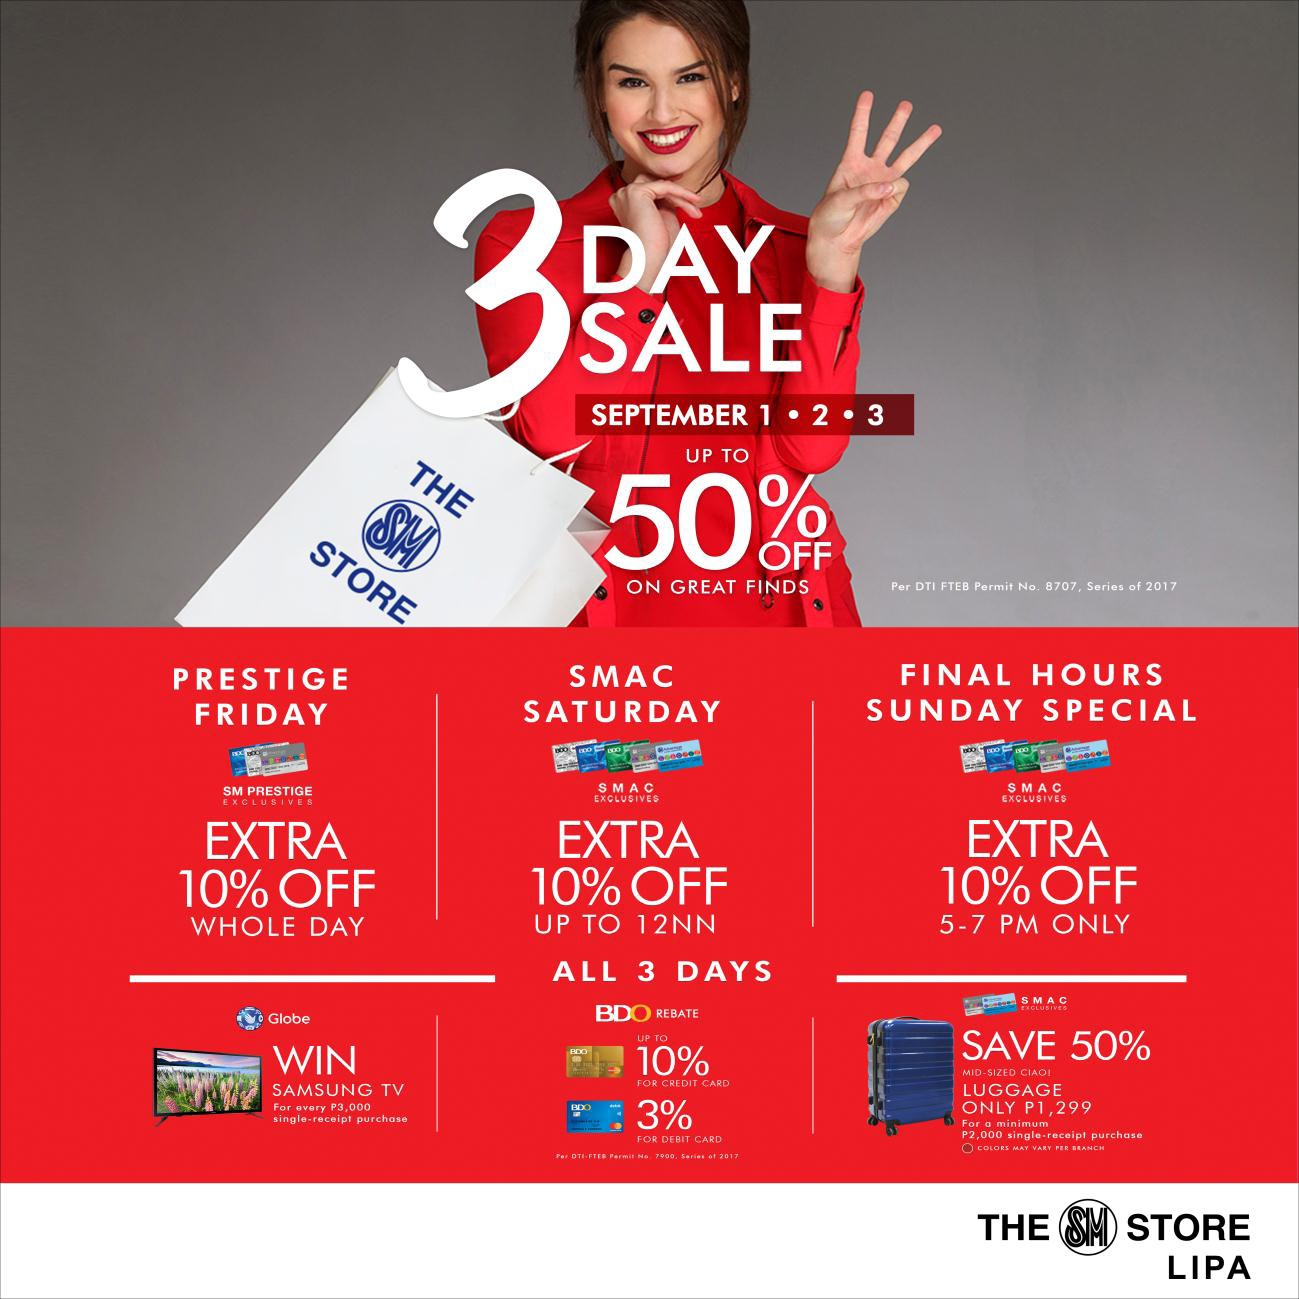 SM City Lipa's 3-day Sale: List of Important Reminders